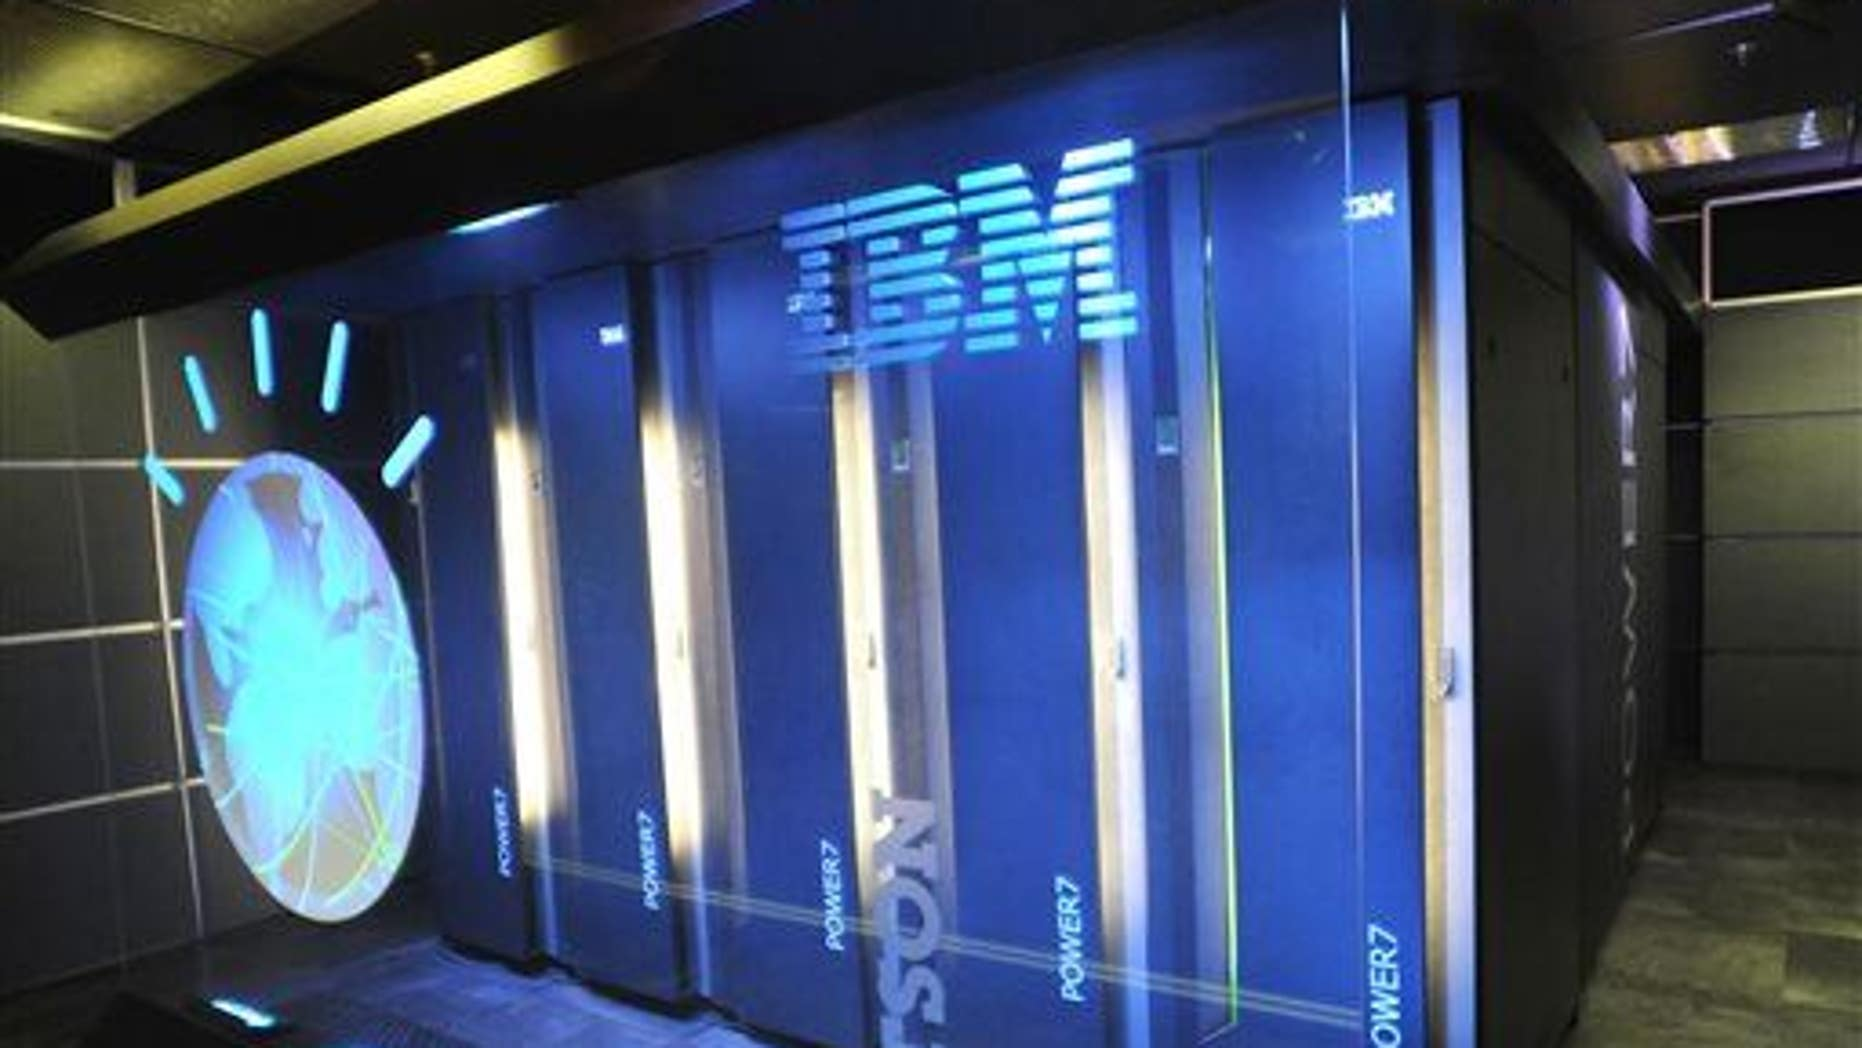 This file photo shows the IBM computer system known as Watson at IBM's TJ Watson Research Center in Yorktown Heights, NY.